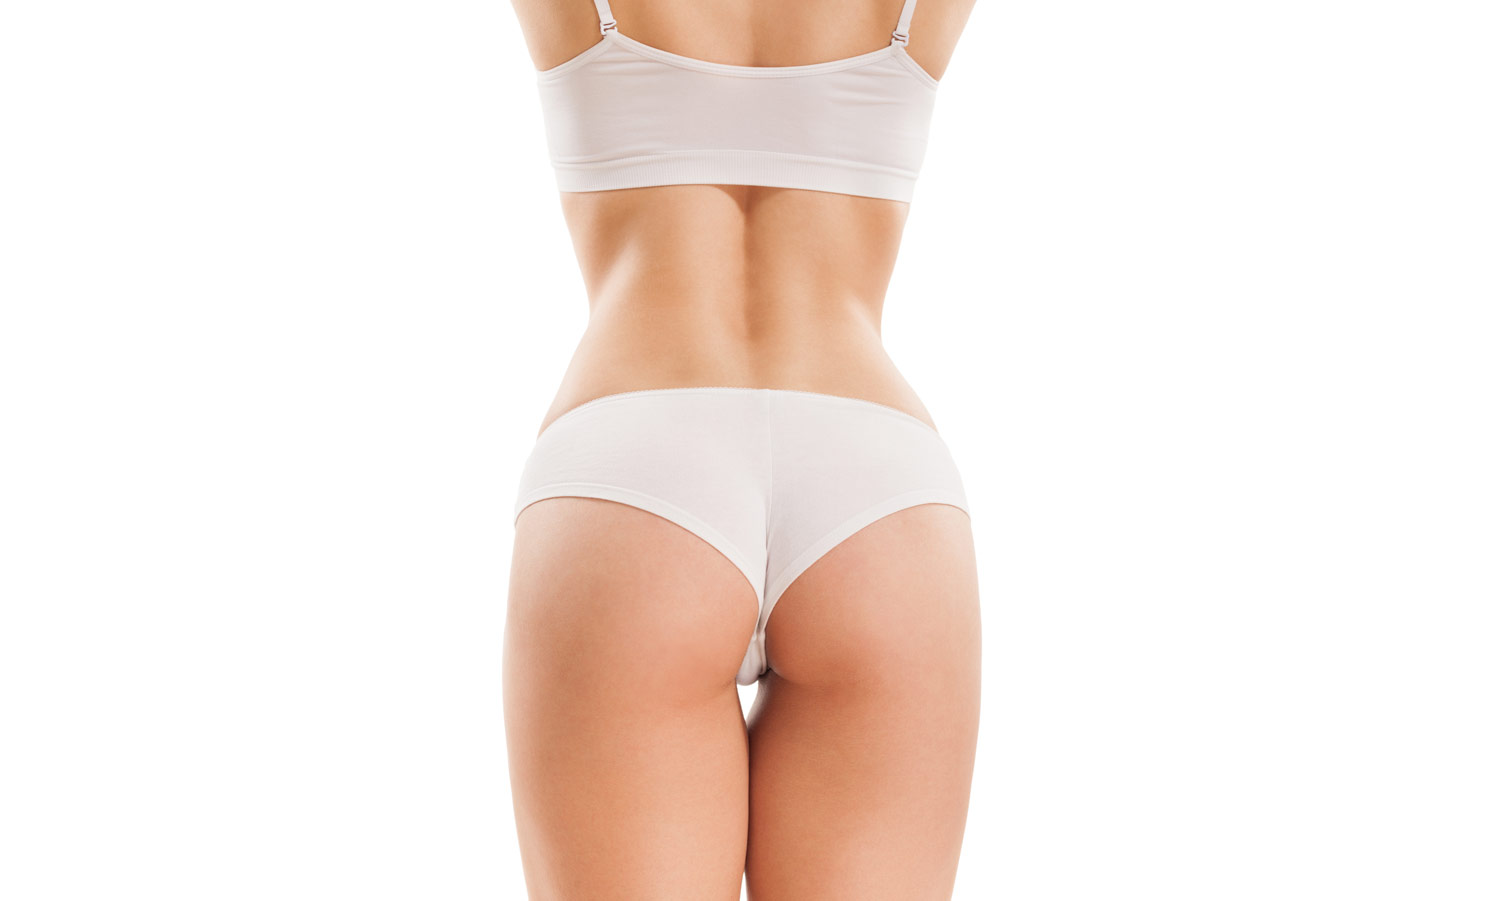 Banish Stubborn Fat & Regain Confidence With Pure Tumescent Liposuction